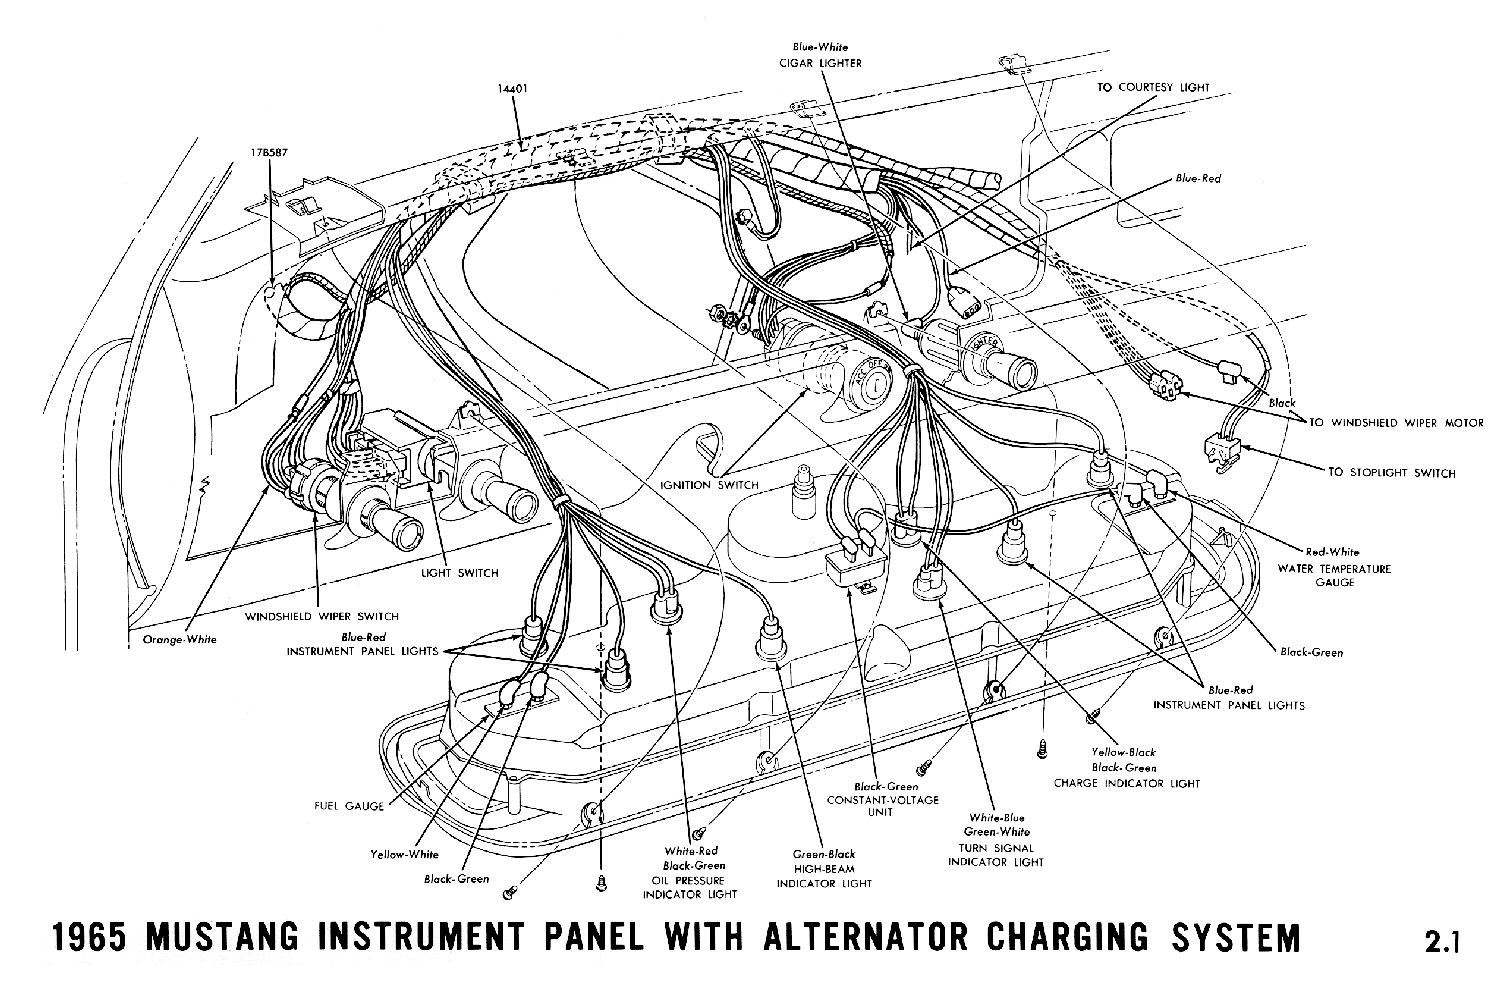 1965 Ford Mustang Wiring Diagrams Img Harness Kits Average Joe Restoration Body